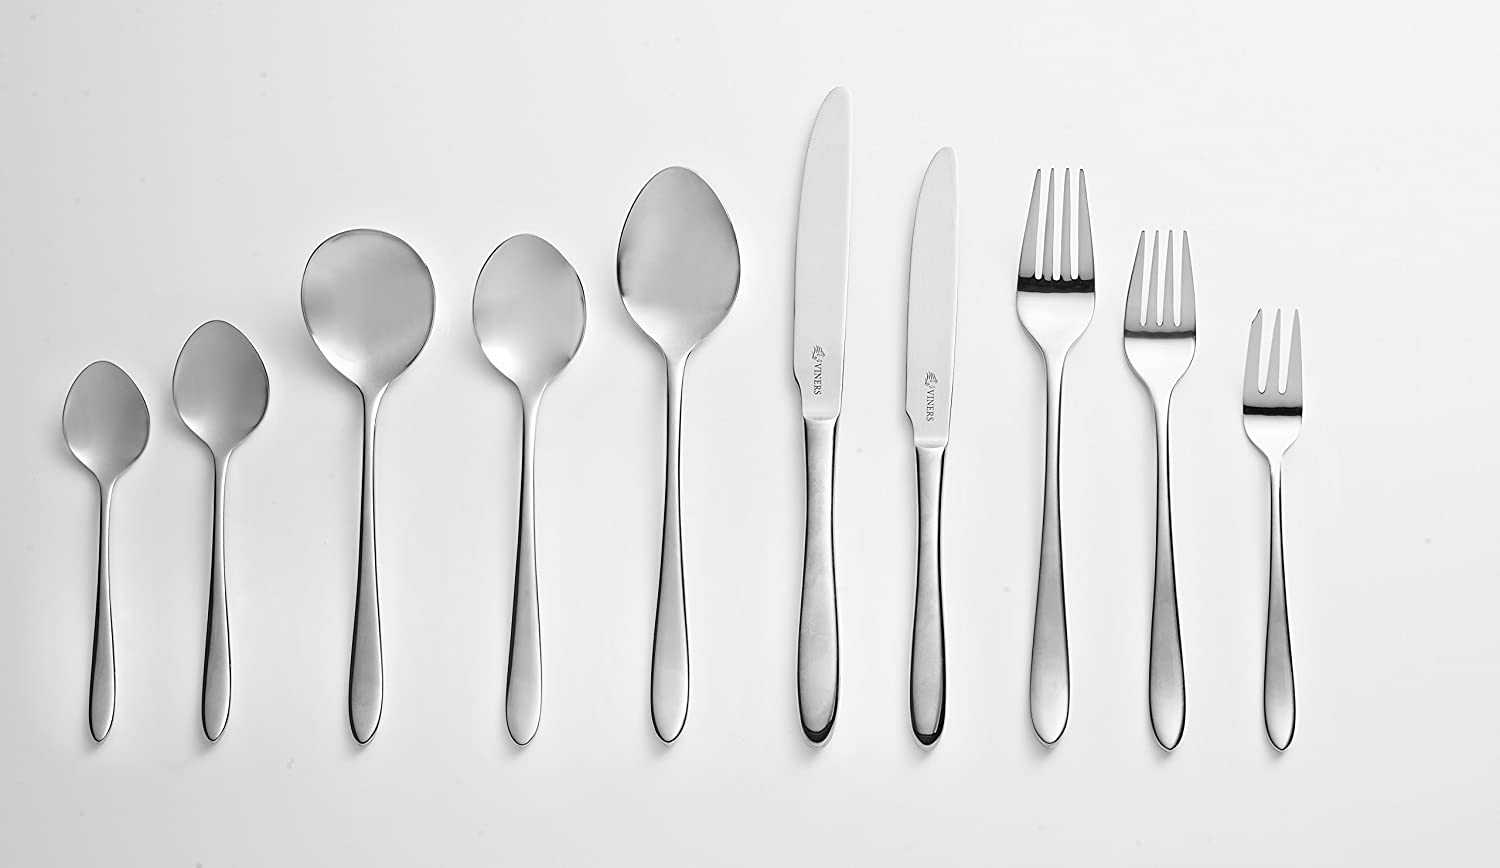 Viners Eden 44 Piece 18//10 Stainless Steel Cutlery Canteen Set in Gift Box Silver 54 x 9 x 32 cm